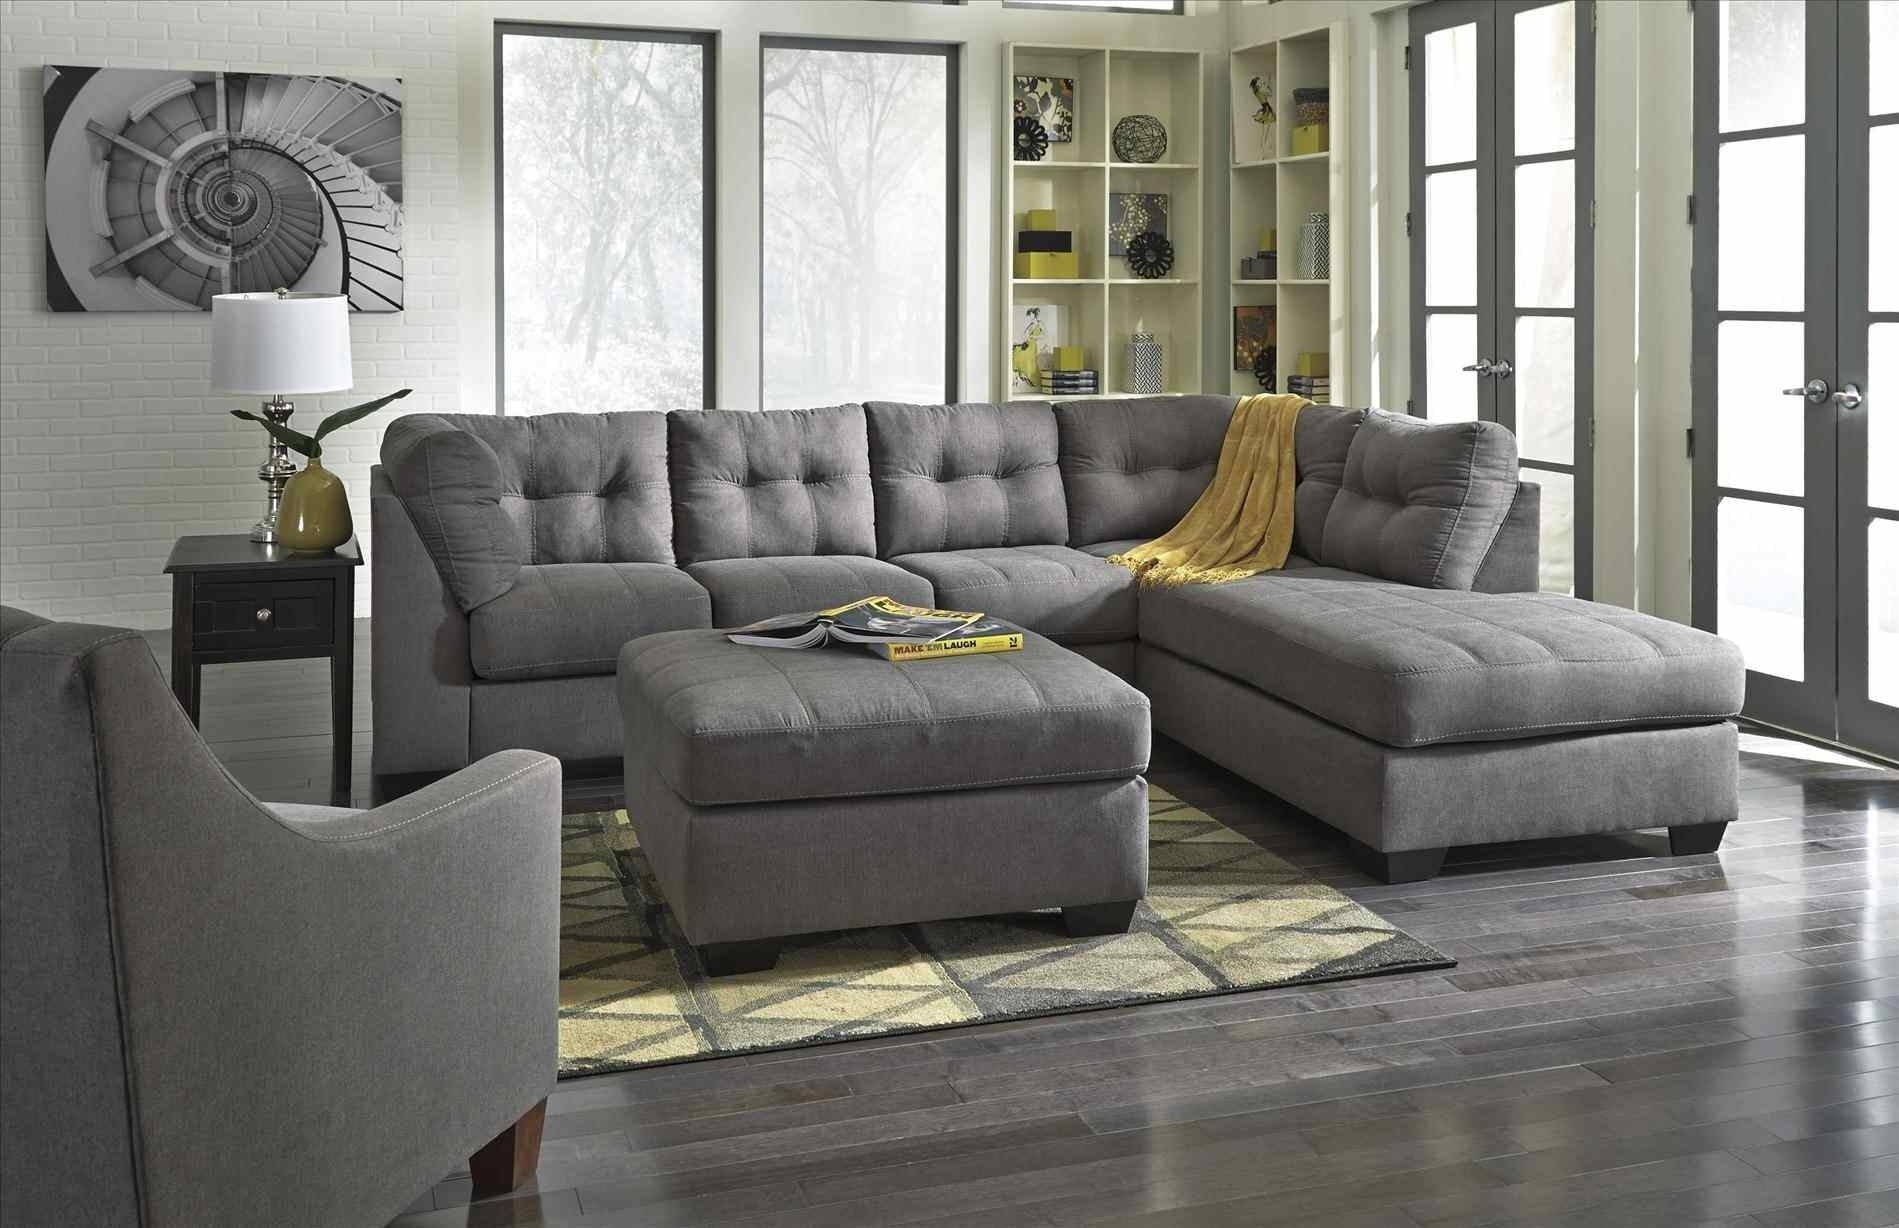 Couch : W Accent Pillows Sam Levitz Furniture Brindon Sofas Living Throughout Sam Levitz Sectional Sofas (View 4 of 10)